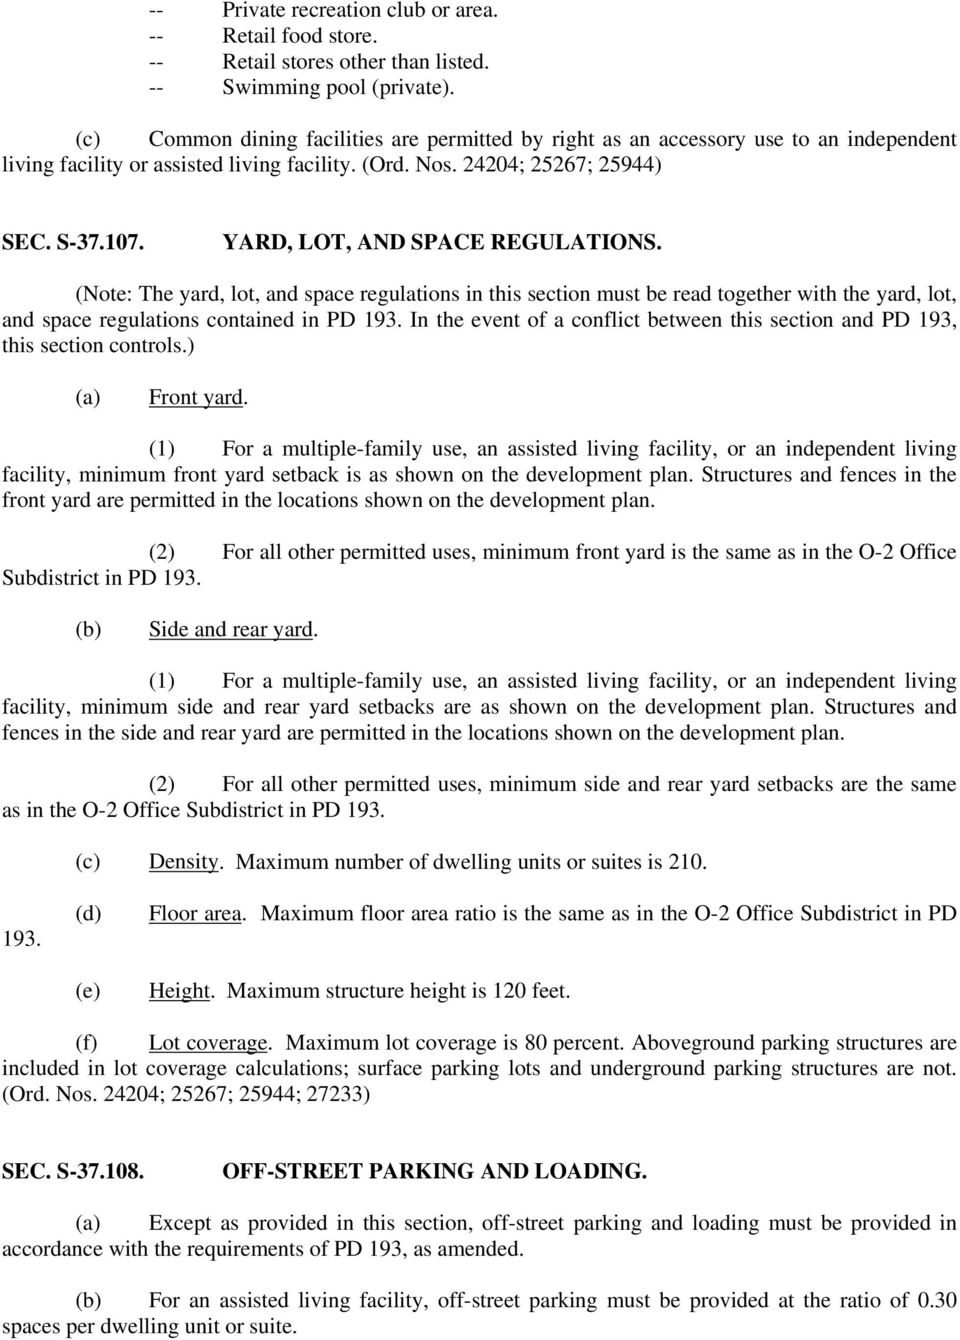 YARD, LOT, AND SPACE REGULATIONS. (Note: The yard, lot, and space regulations in this section must be read together with the yard, lot, and space regulations contained in PD 193.